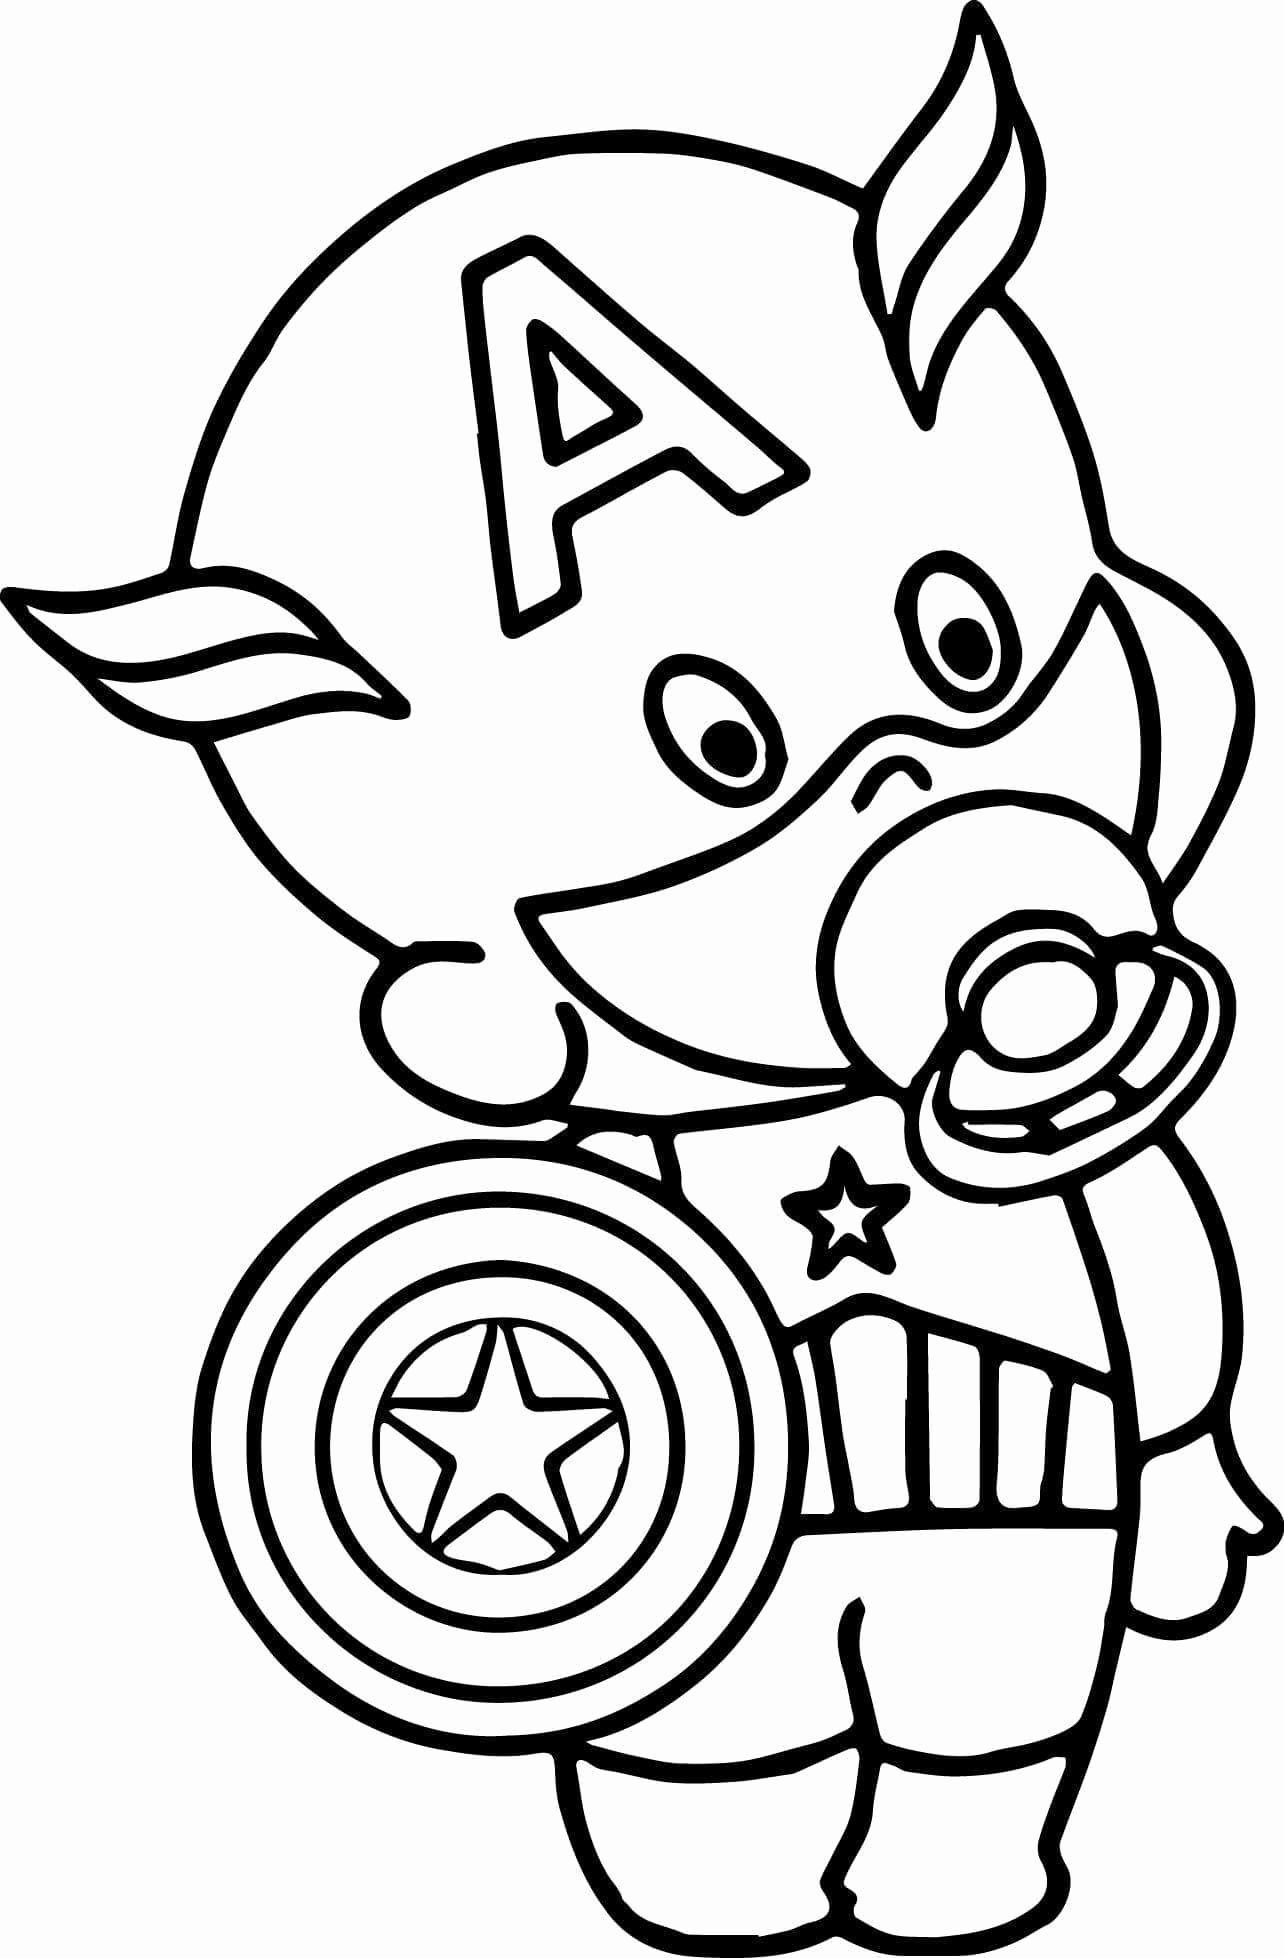 Baby Superhero Coloring Pages For Kids Superhero Coloring Avengers Coloring Pages Captain America Coloring Pages